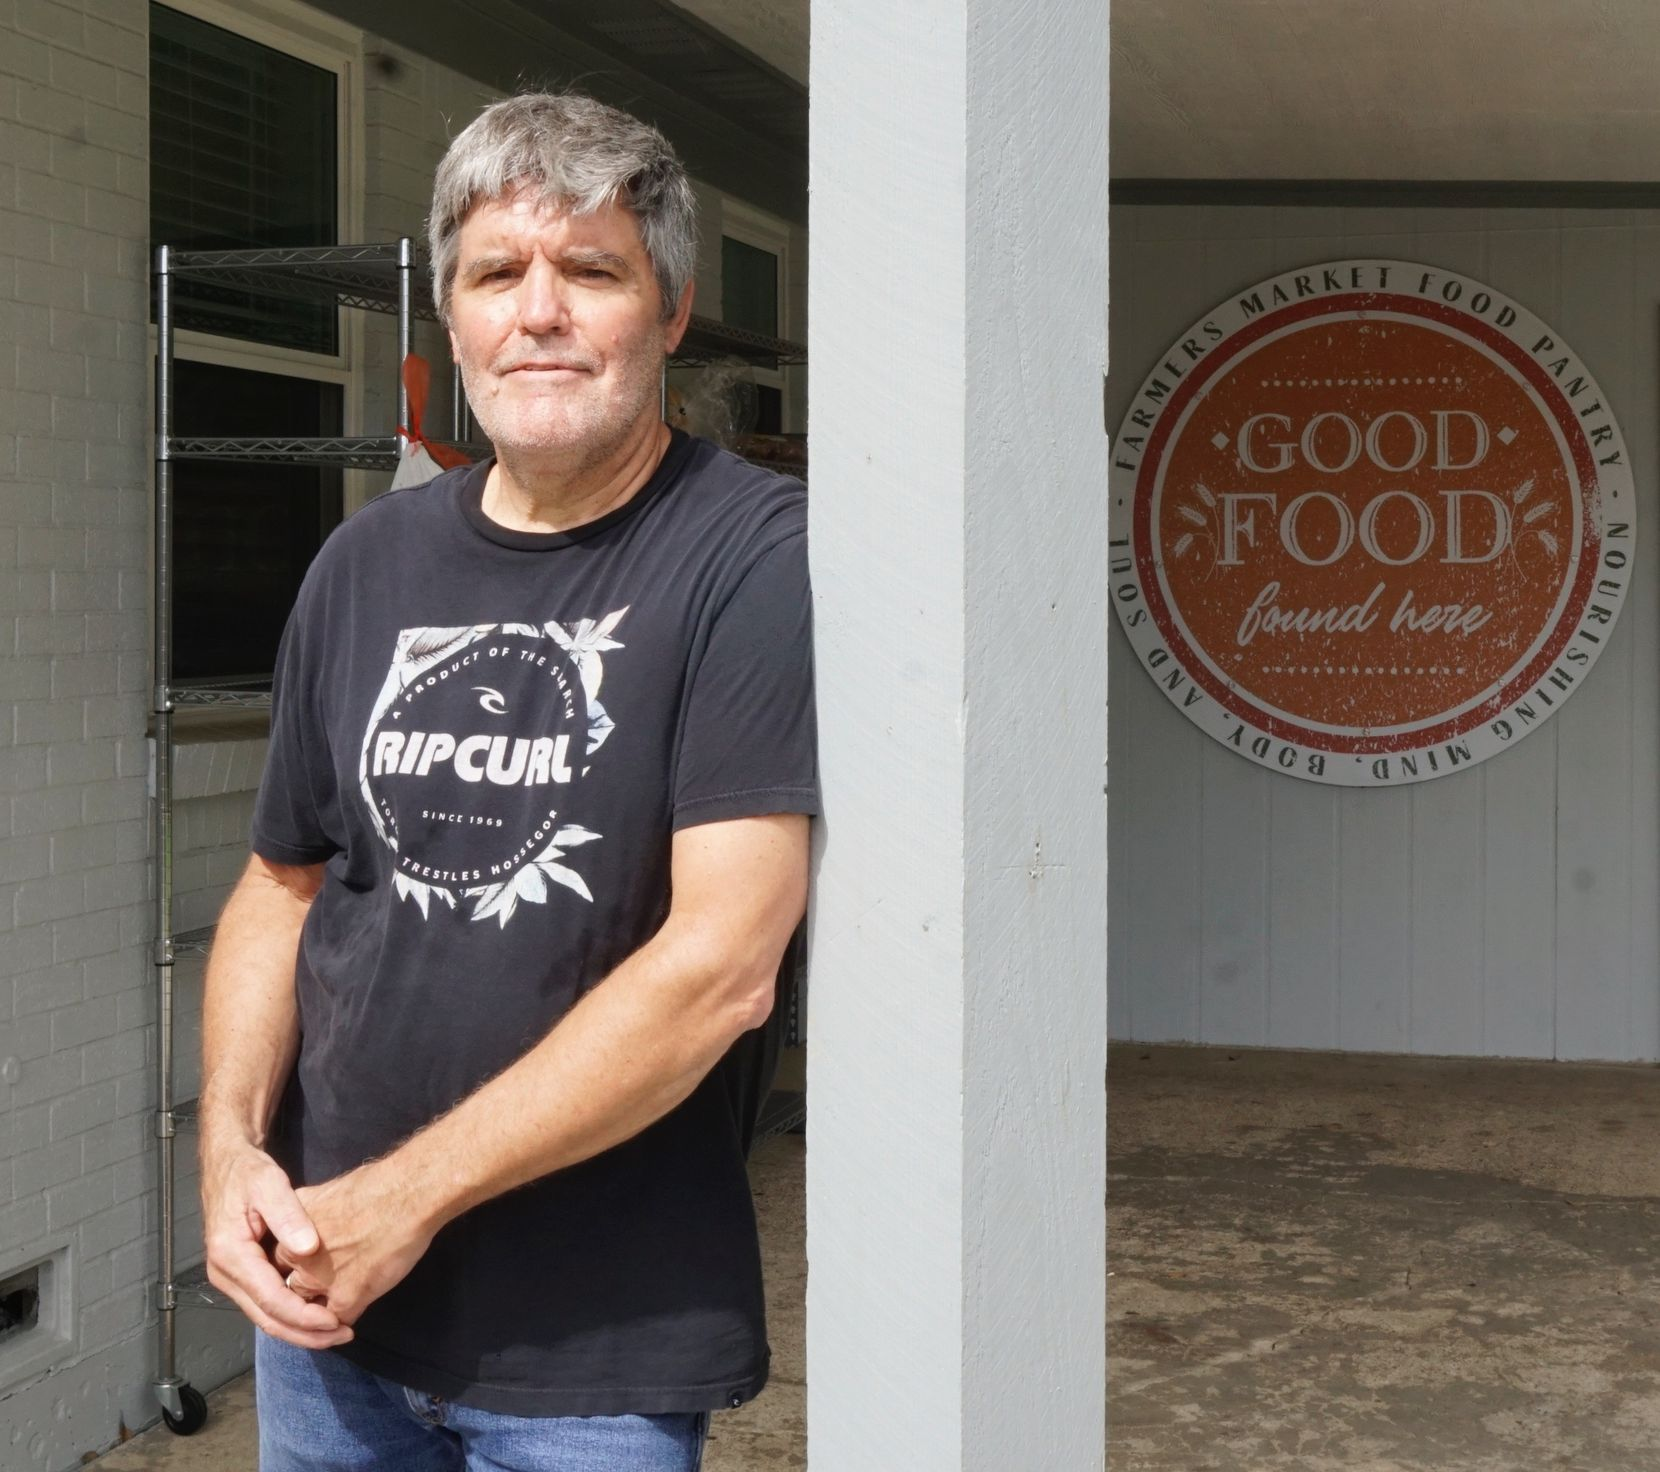 After losing his job in late March, Bill Kennedy of Plano started volunteering at the food pantry in nearby Lewisville.